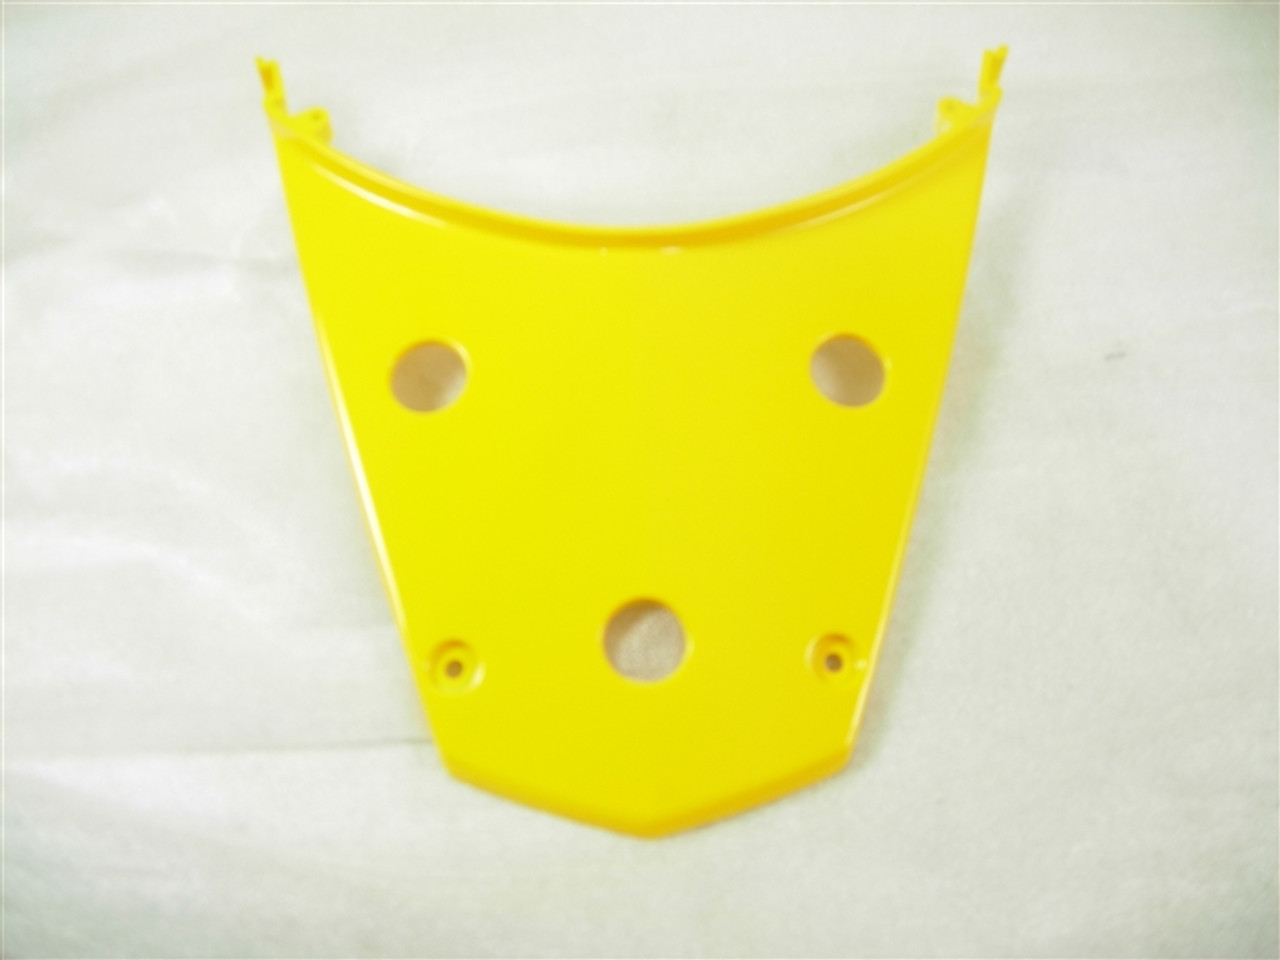 TAIL PANEL 11686-A94-12